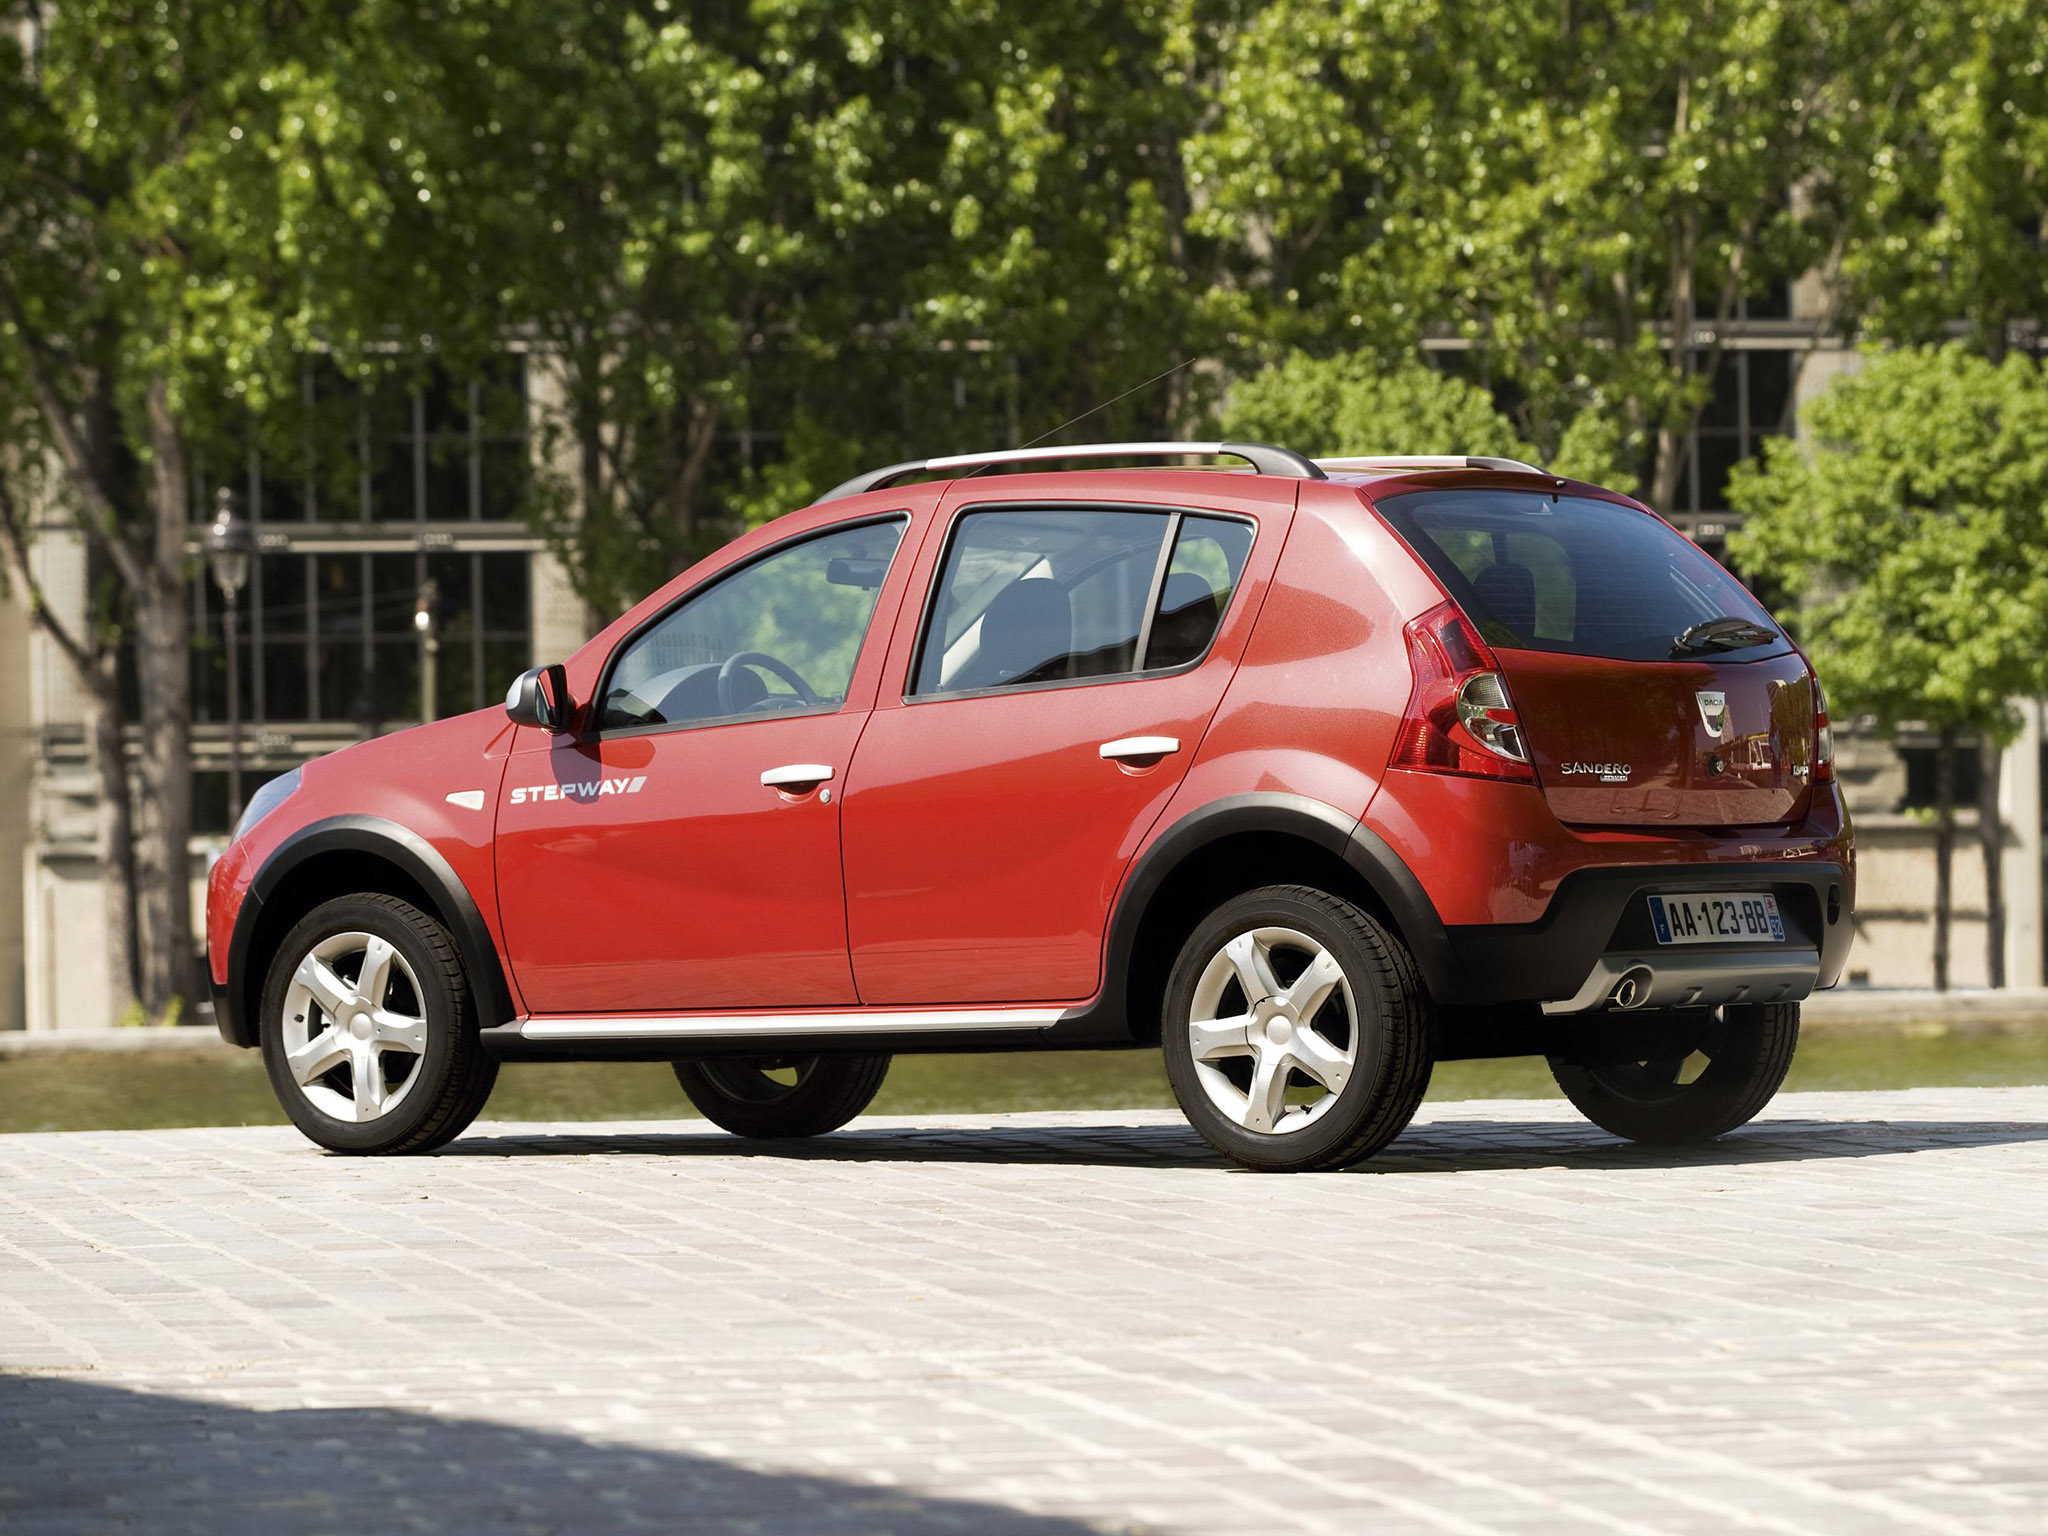 dacia sandero stepway 2009 dacia sandero stepway 2009 photo 05 car in pictures car photo gallery. Black Bedroom Furniture Sets. Home Design Ideas